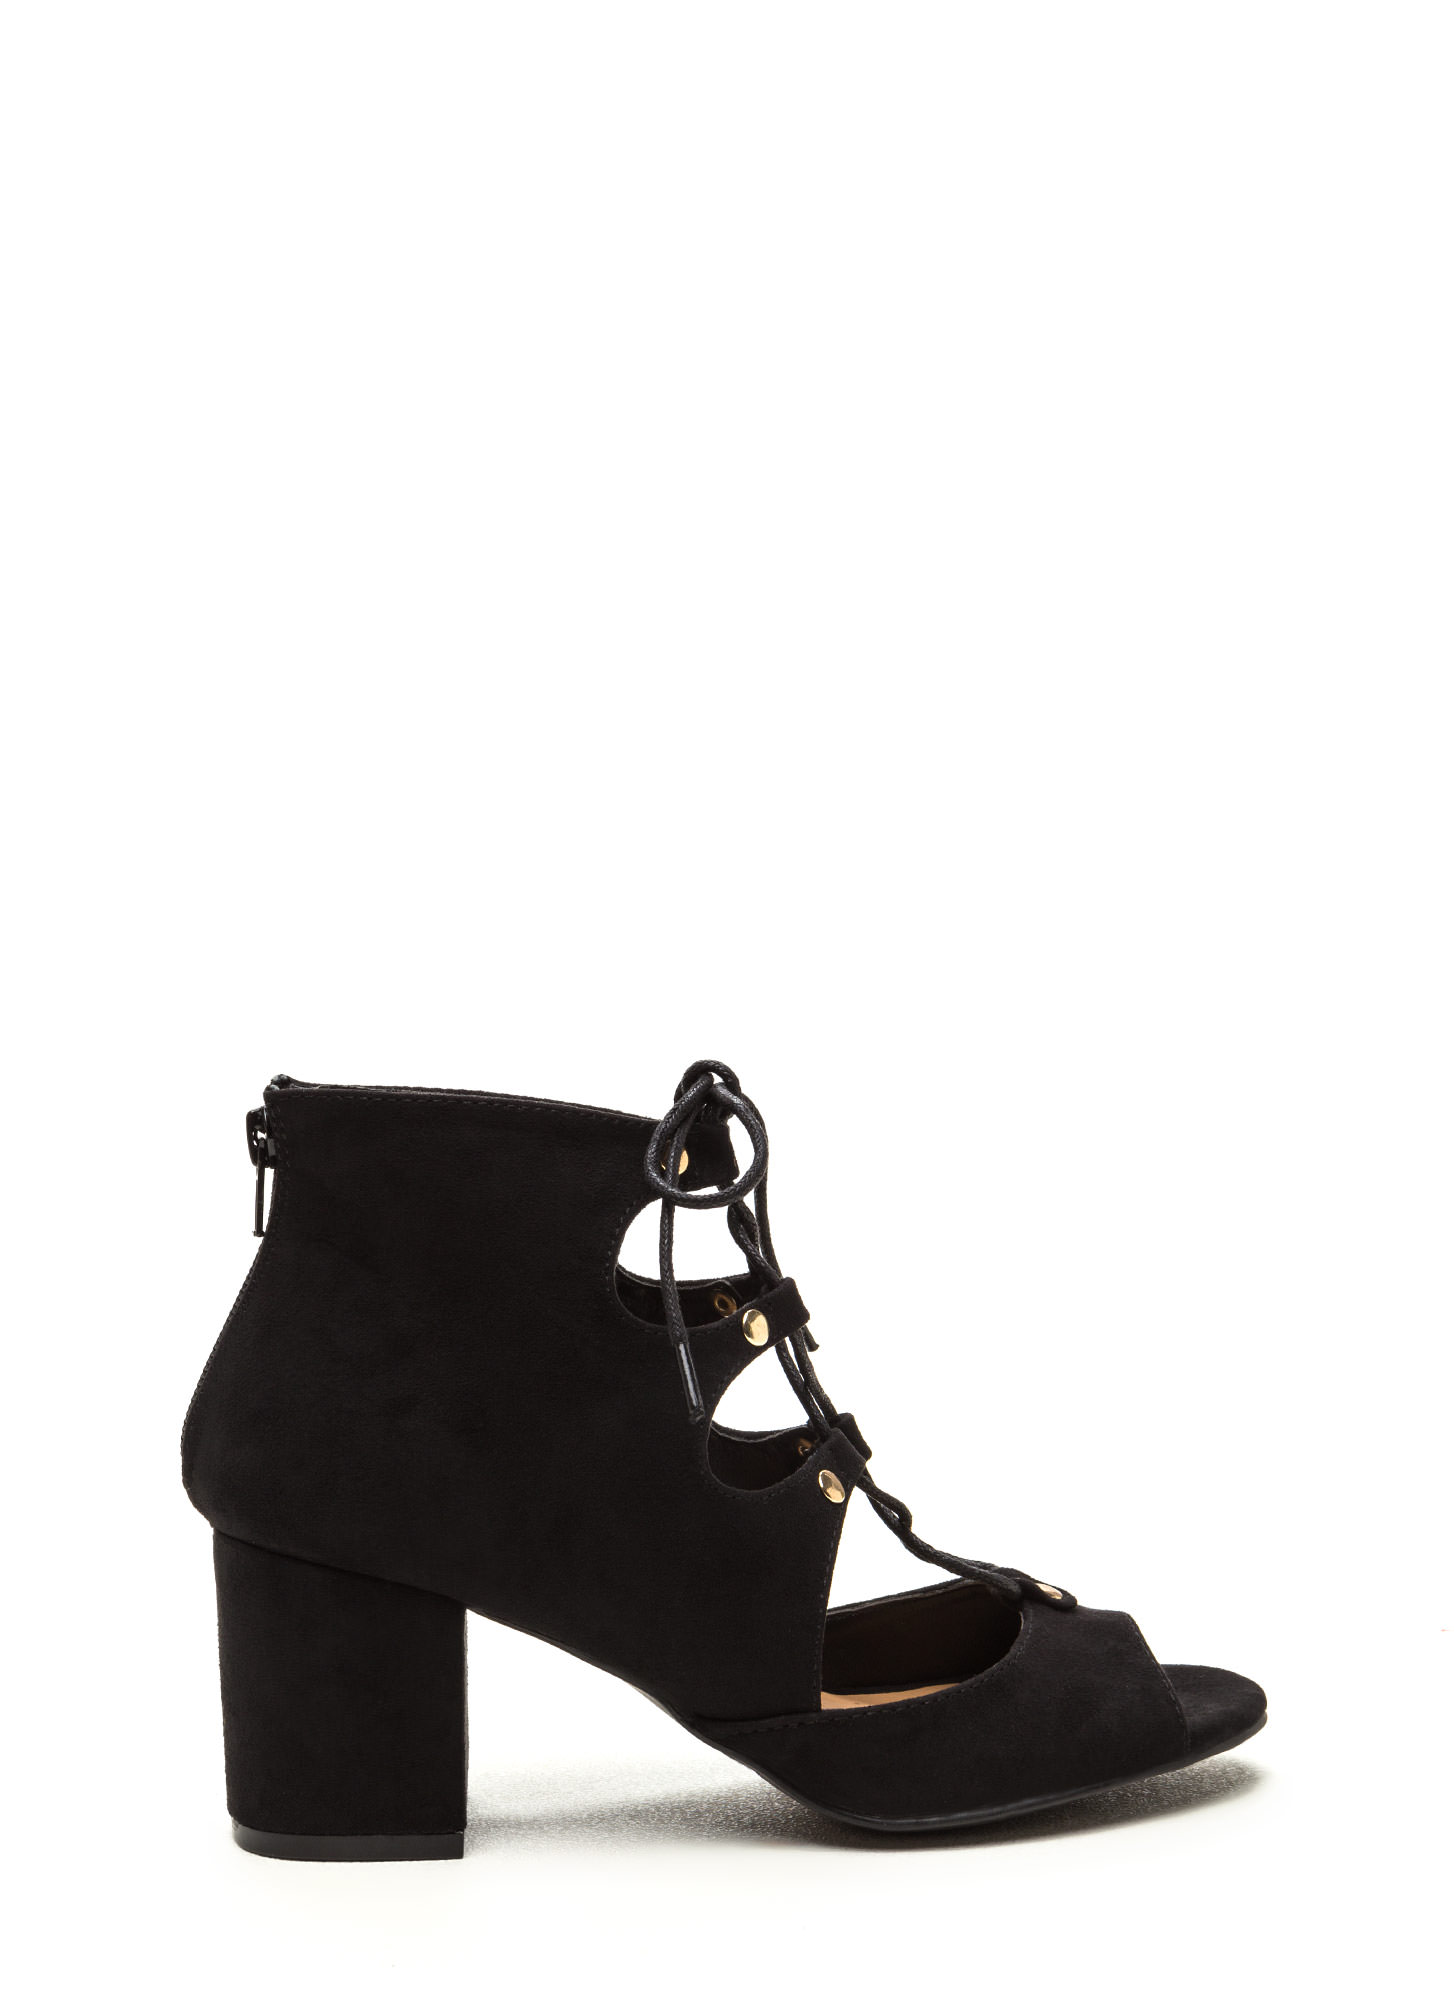 Bound For Greatness Lace-Up Block Heels BLACK